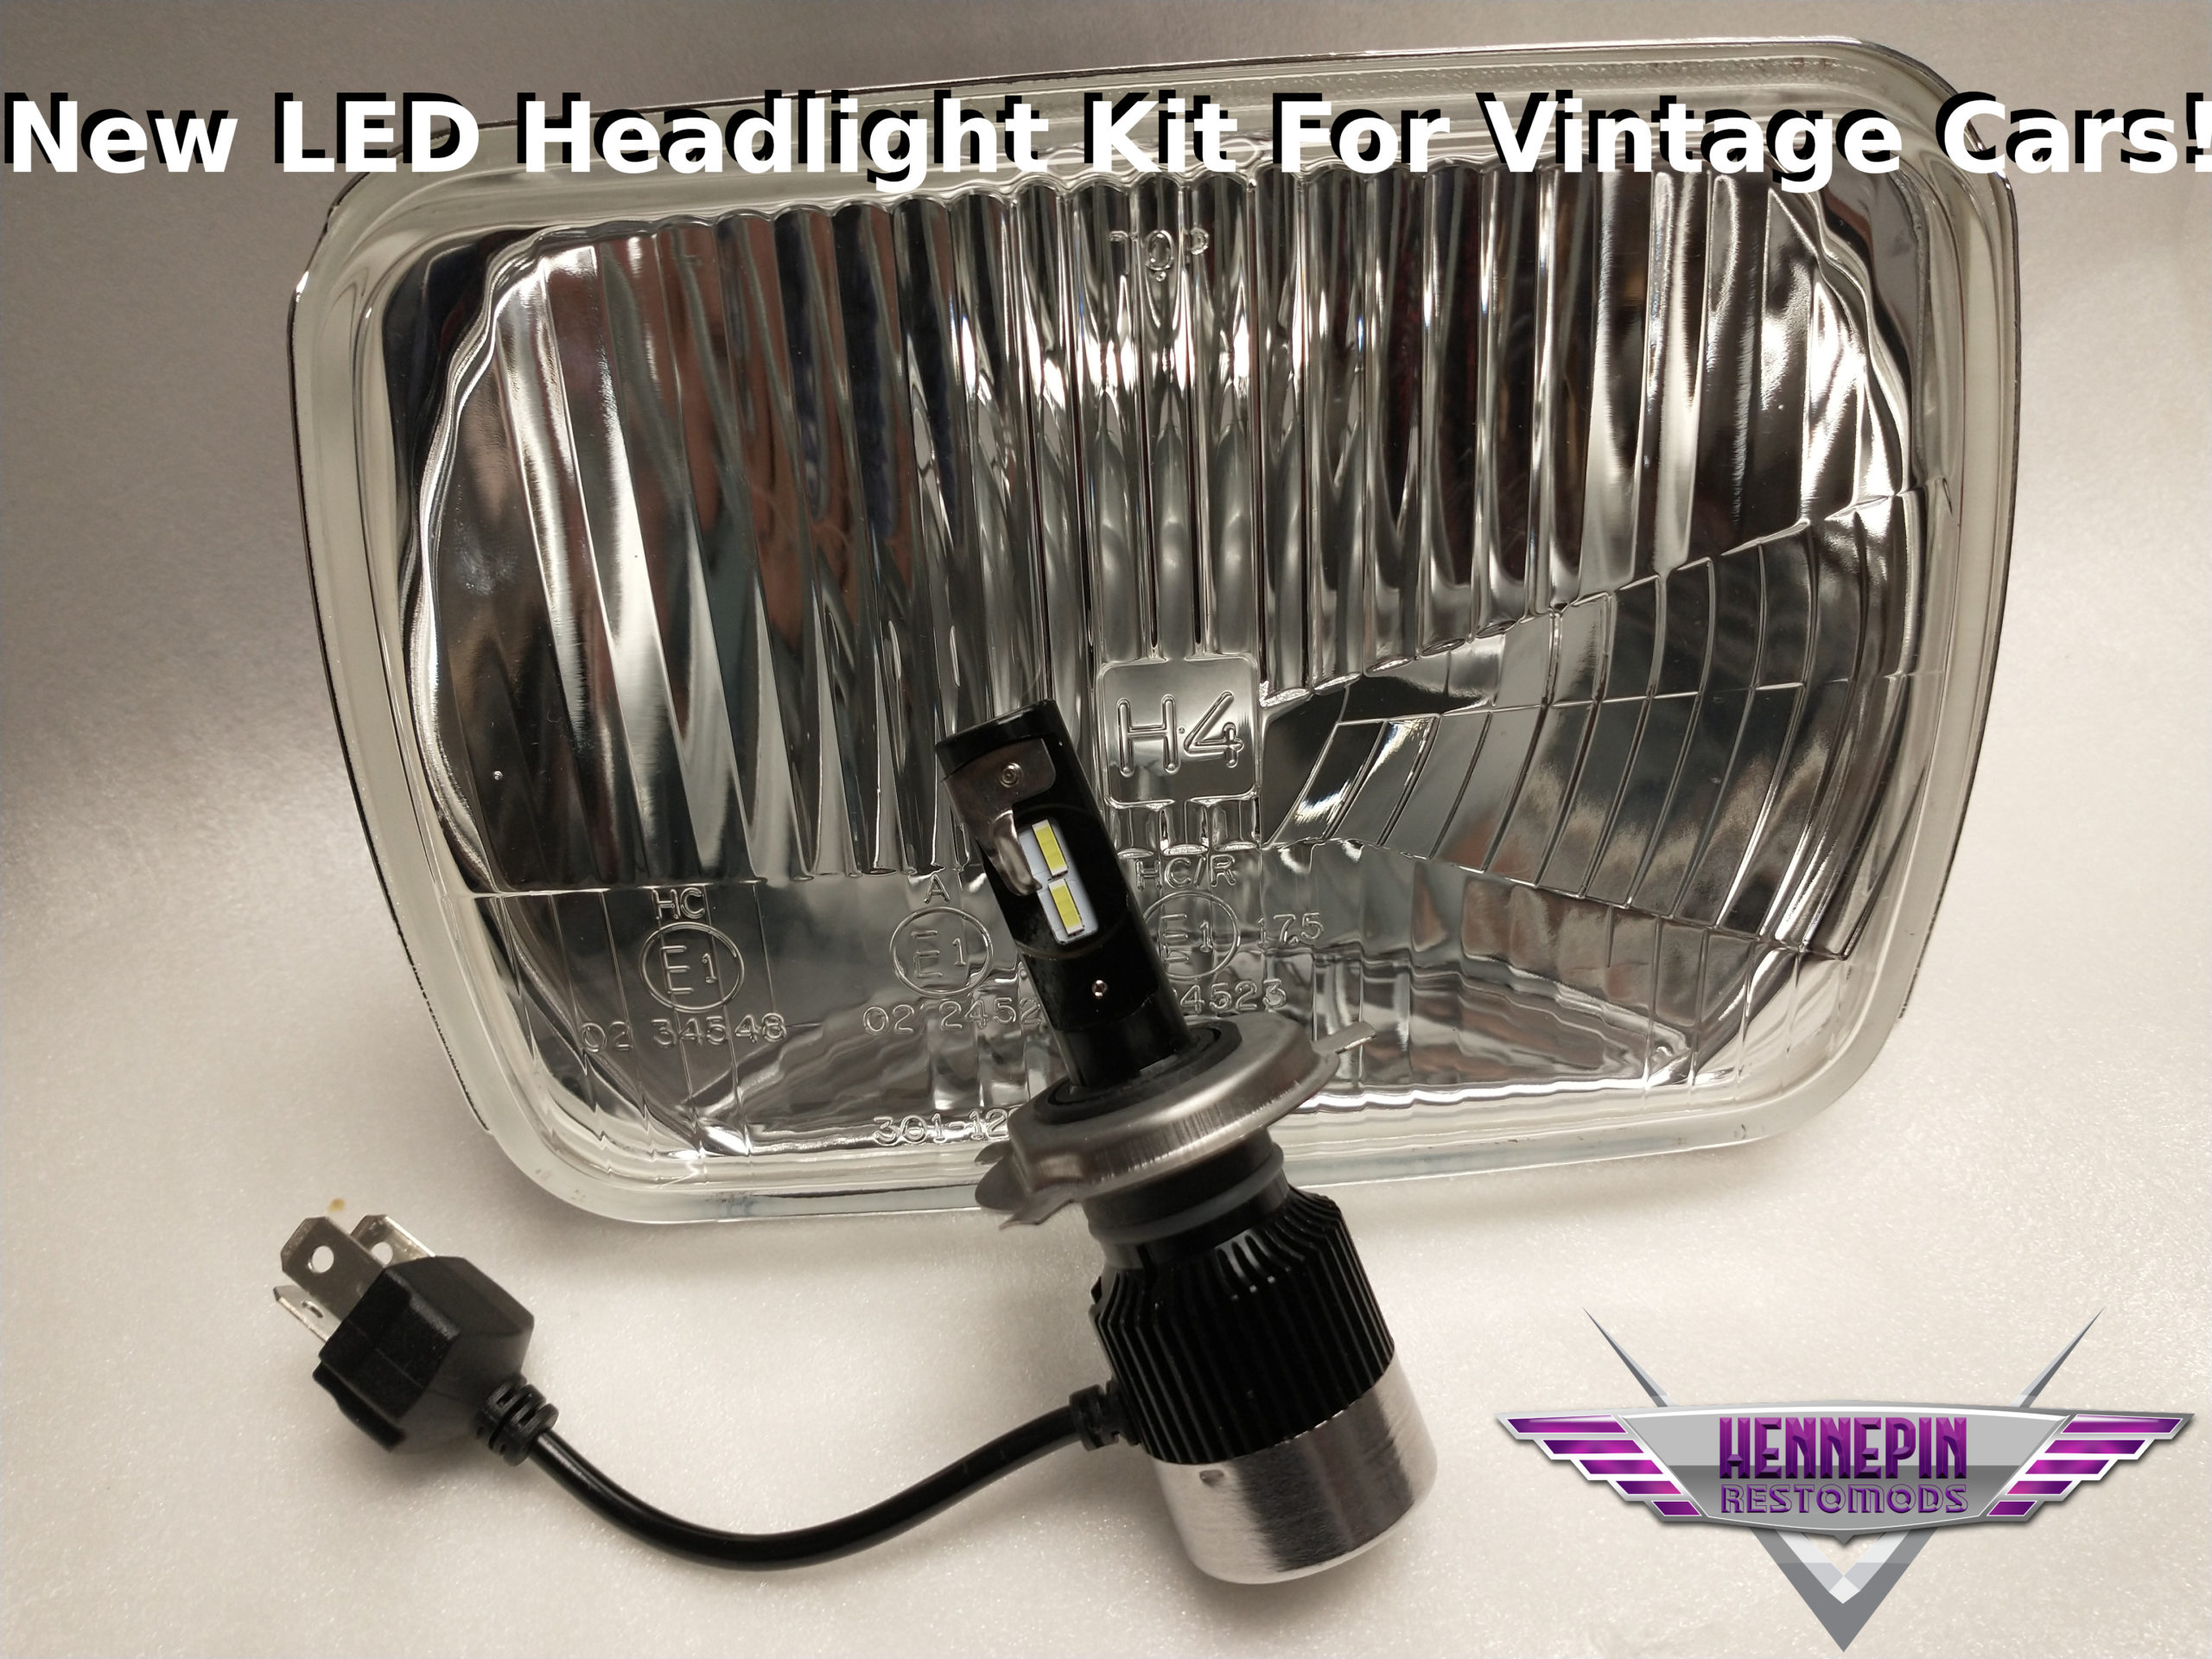 New LED classic car headlights kit for vintage cars